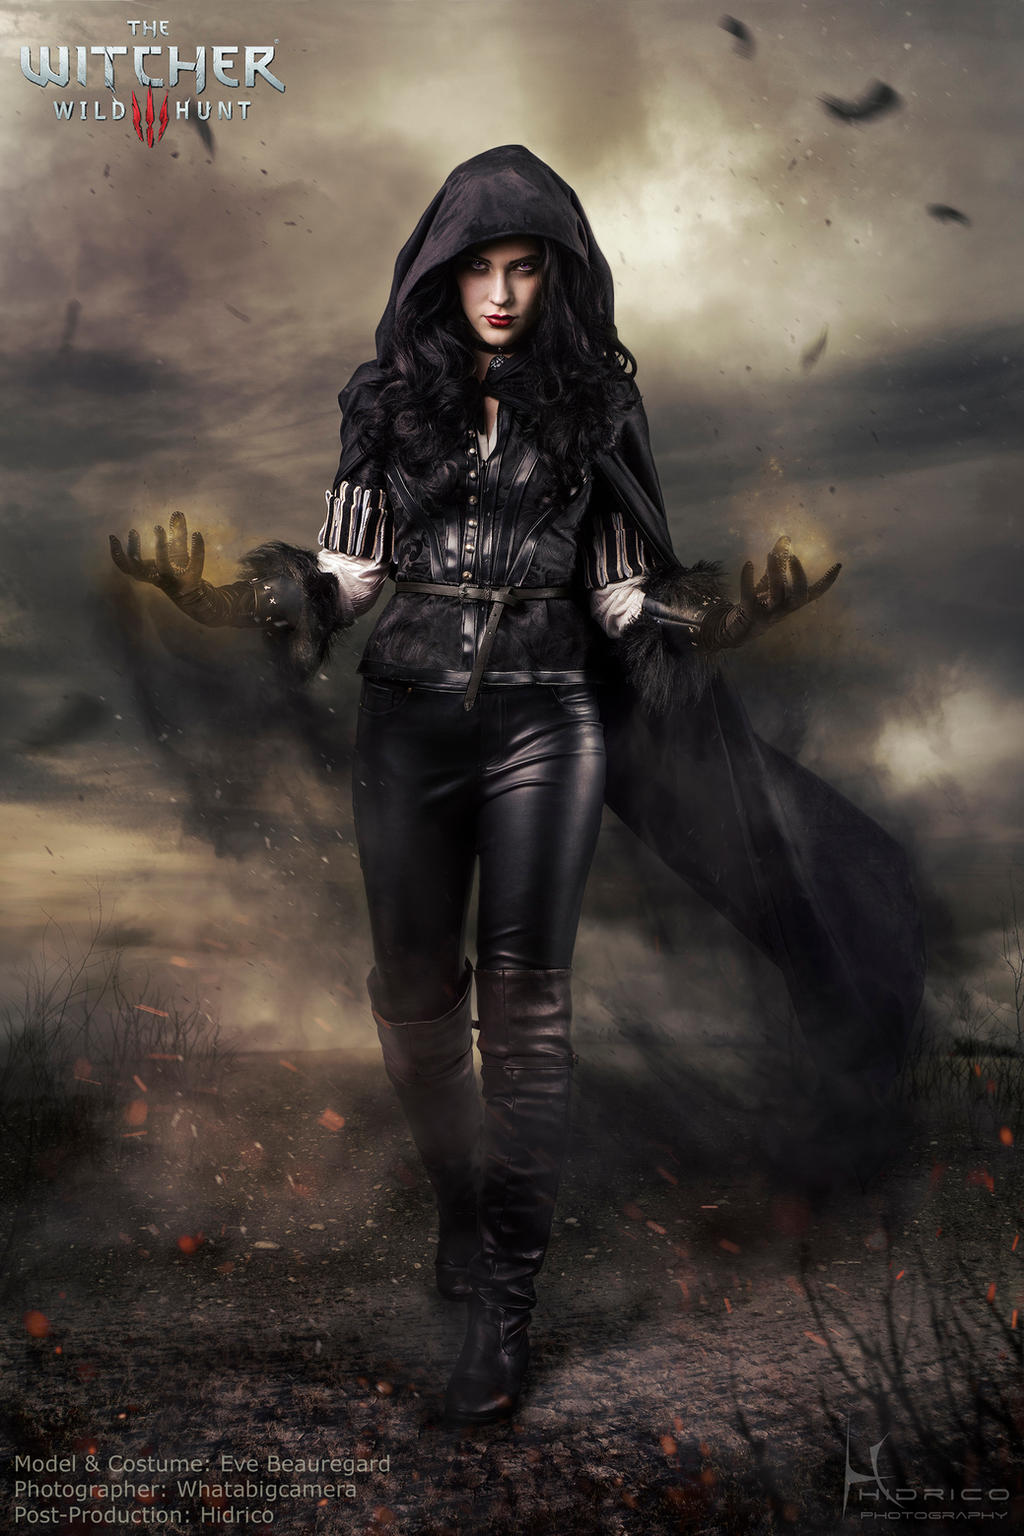 Yennefer of Vengerberg - The Witcher 3 by Hidrico